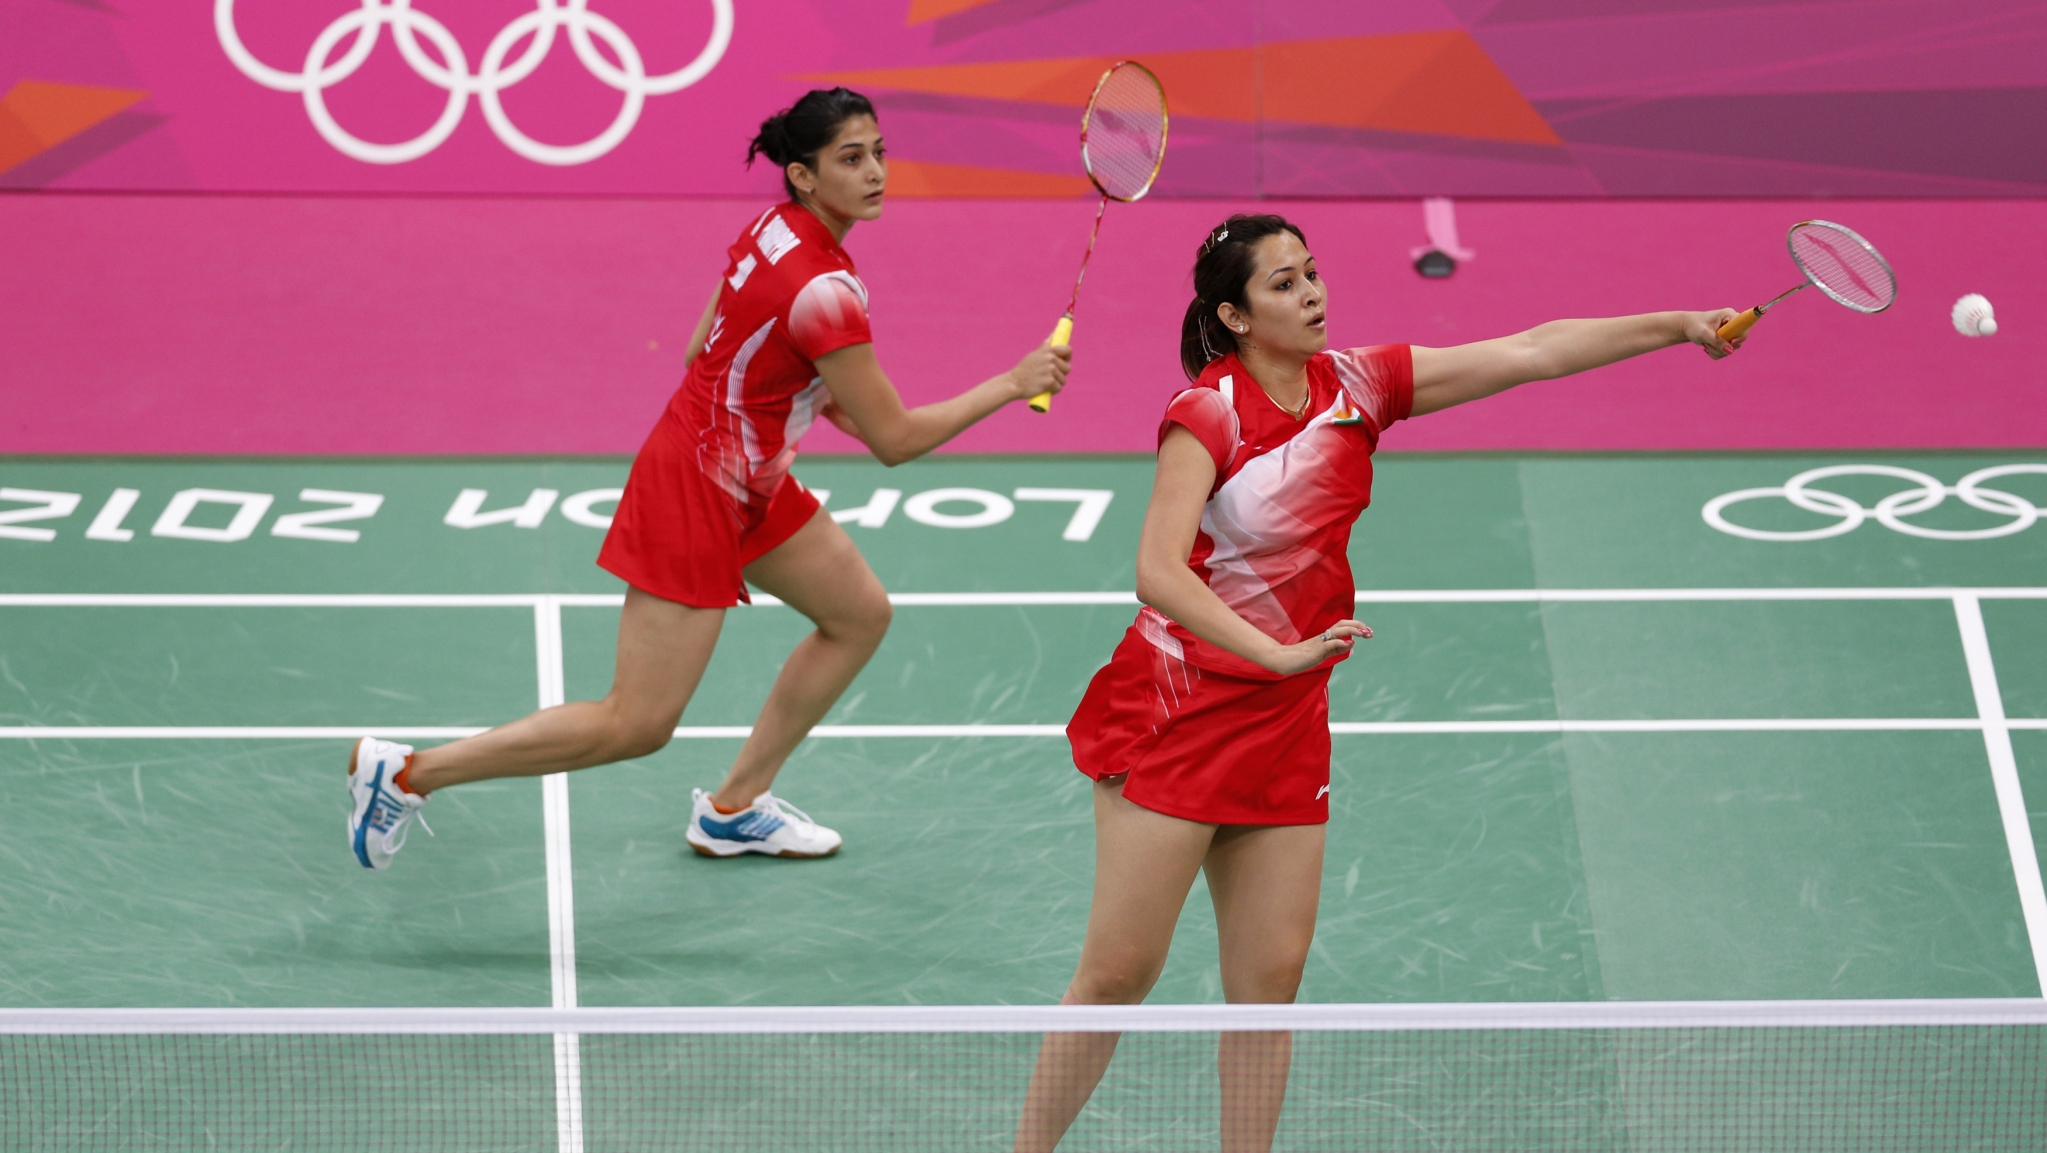 Gutta and Ponnappa Knocked Out of World Badminton Championships